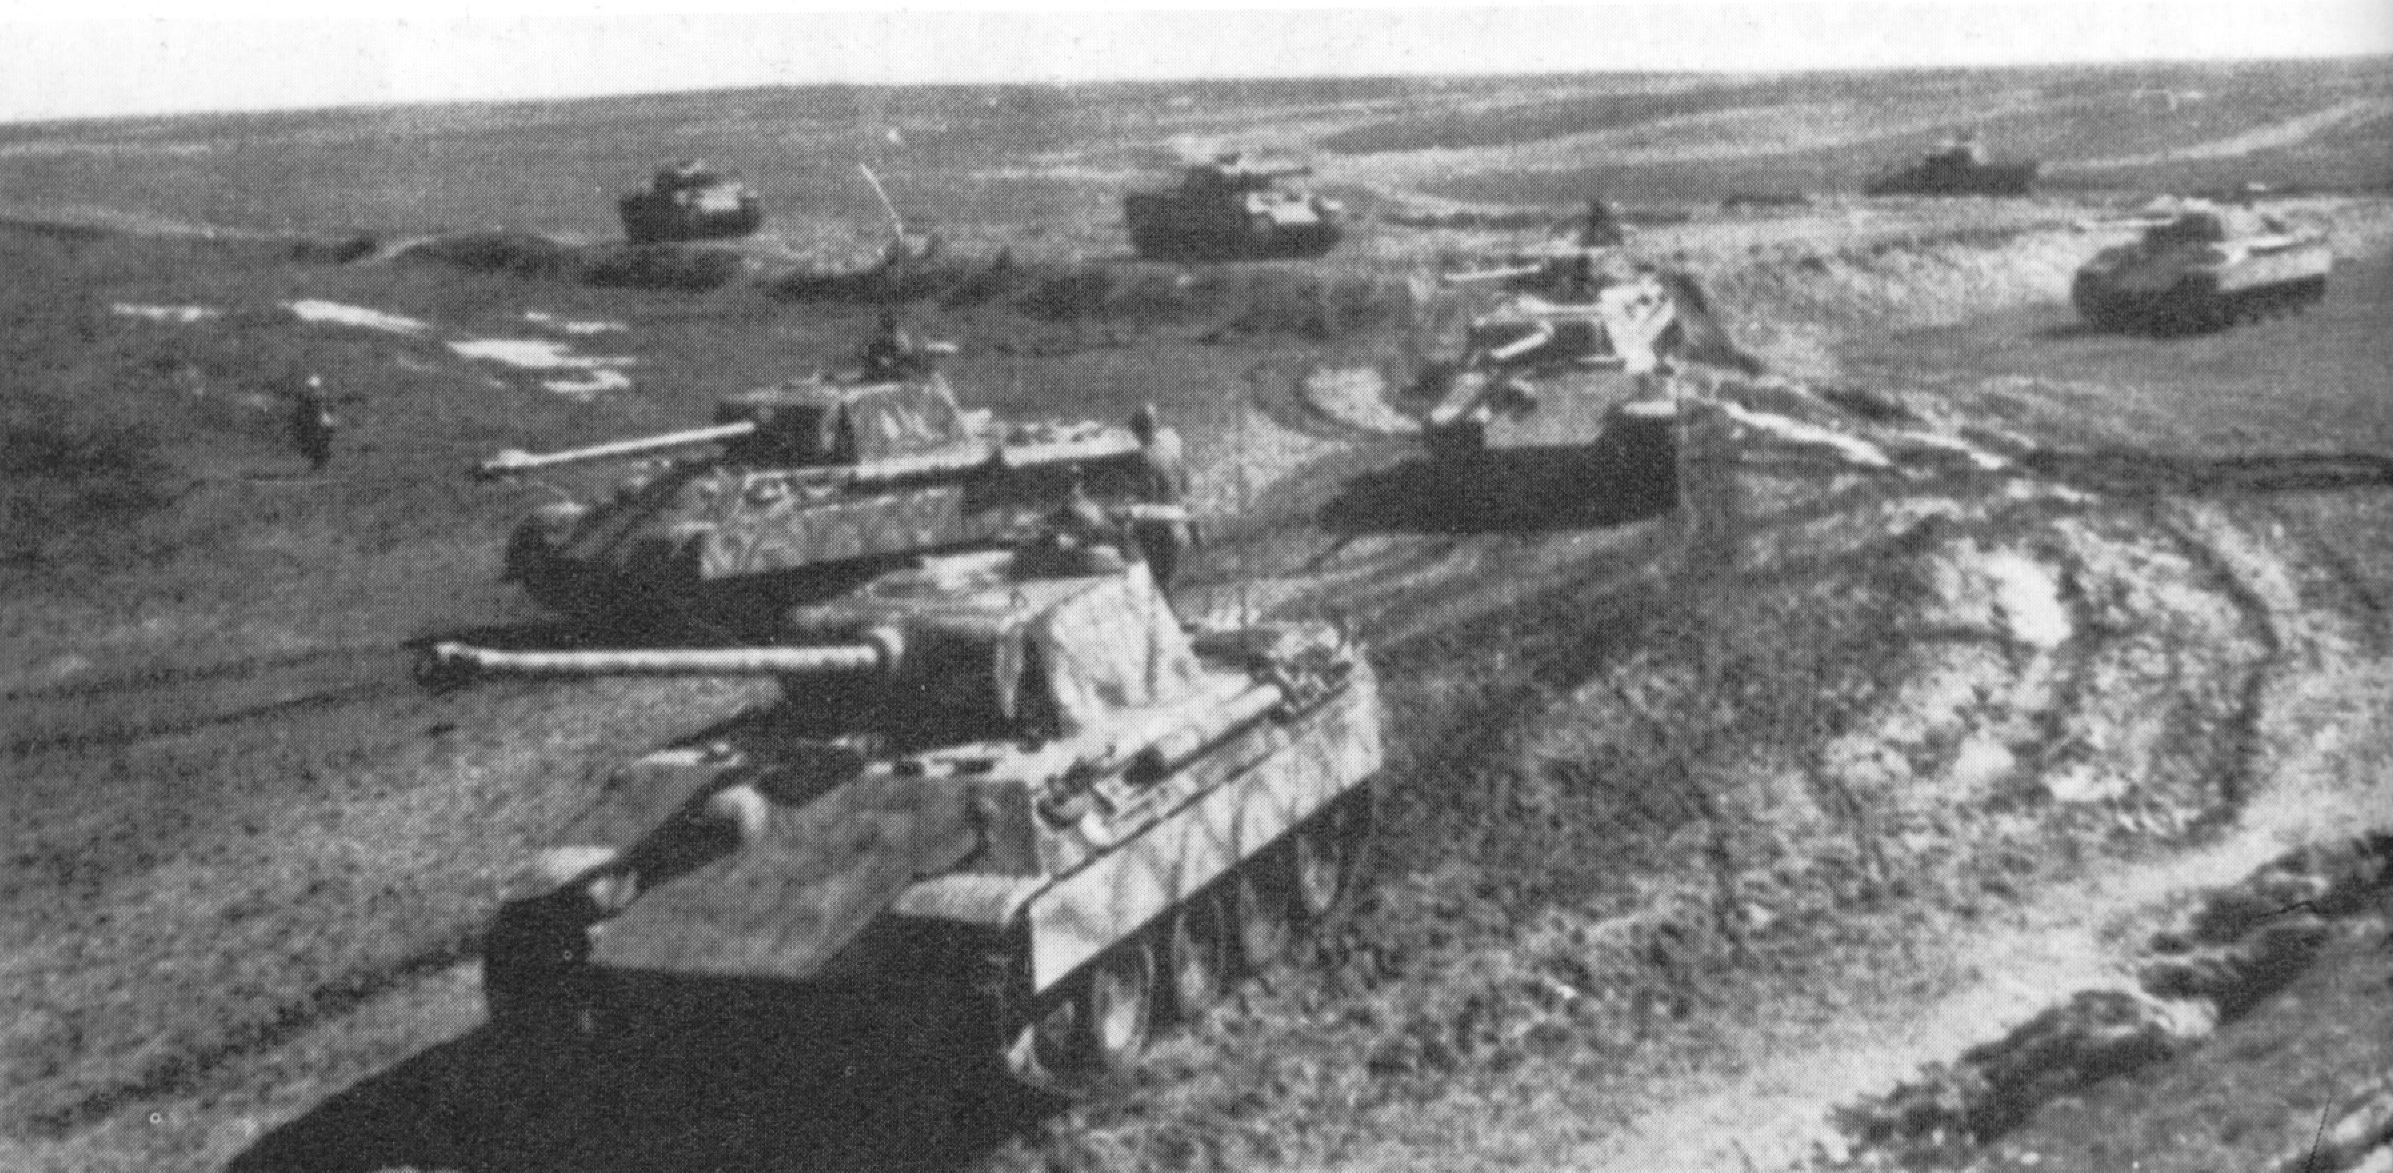 Tanks in WWII Battle of Kursk